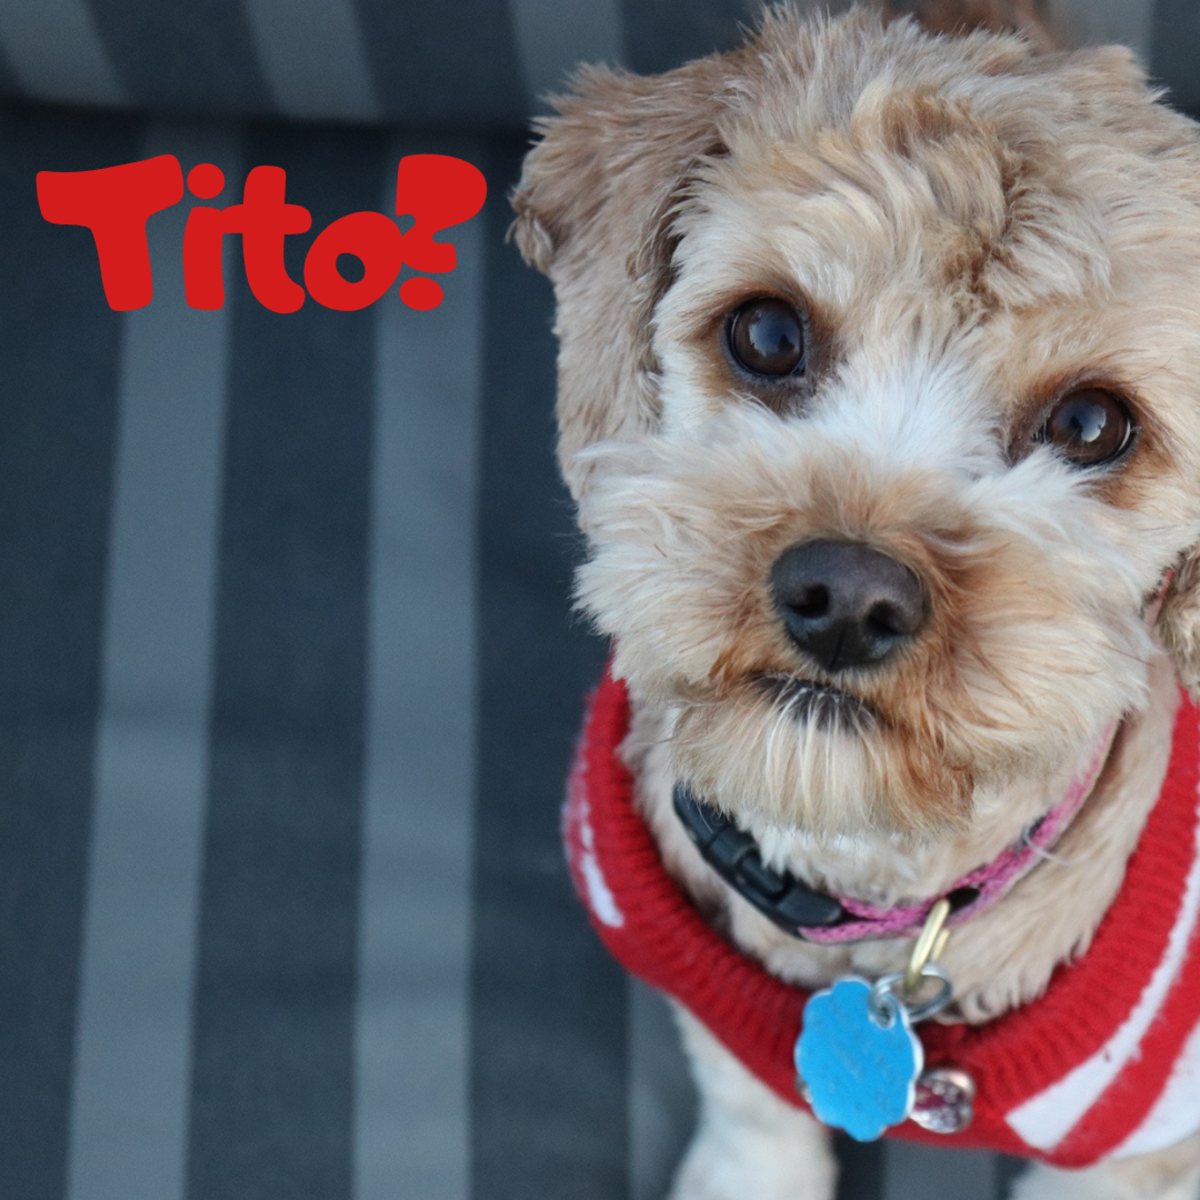 Is he a Tito?